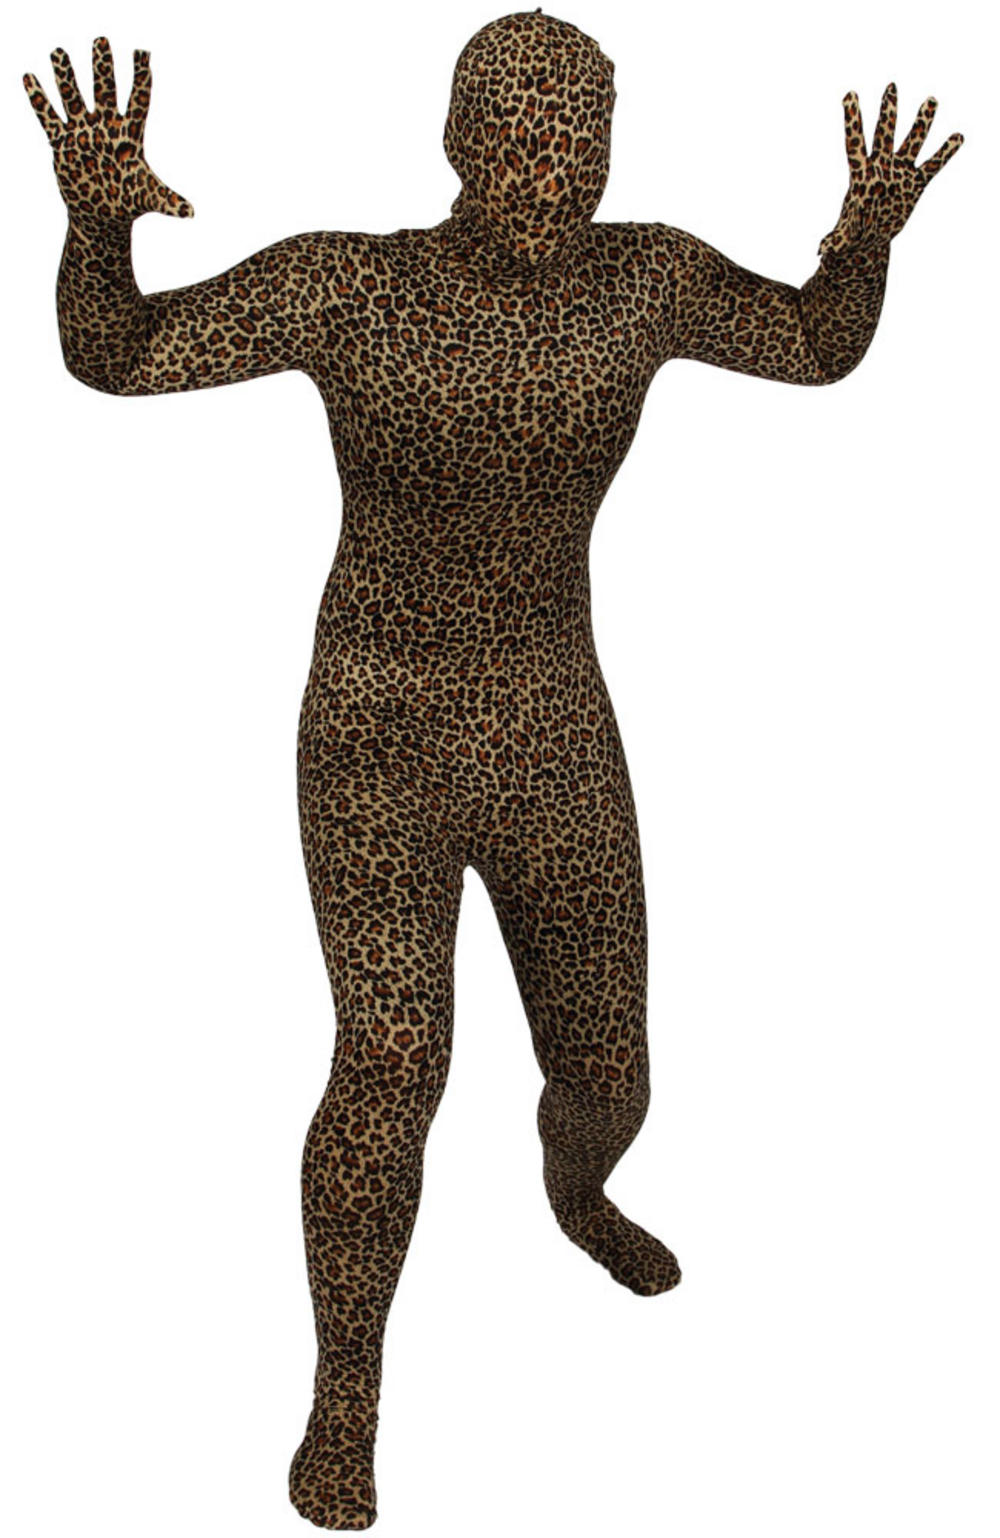 Model #:RLA Just Purr Fect Adult Costume. Be a wild leopard or a tame kitty cat. Costume includes: Adjustable length leopard print dress, cat ear headband, and removable tail.